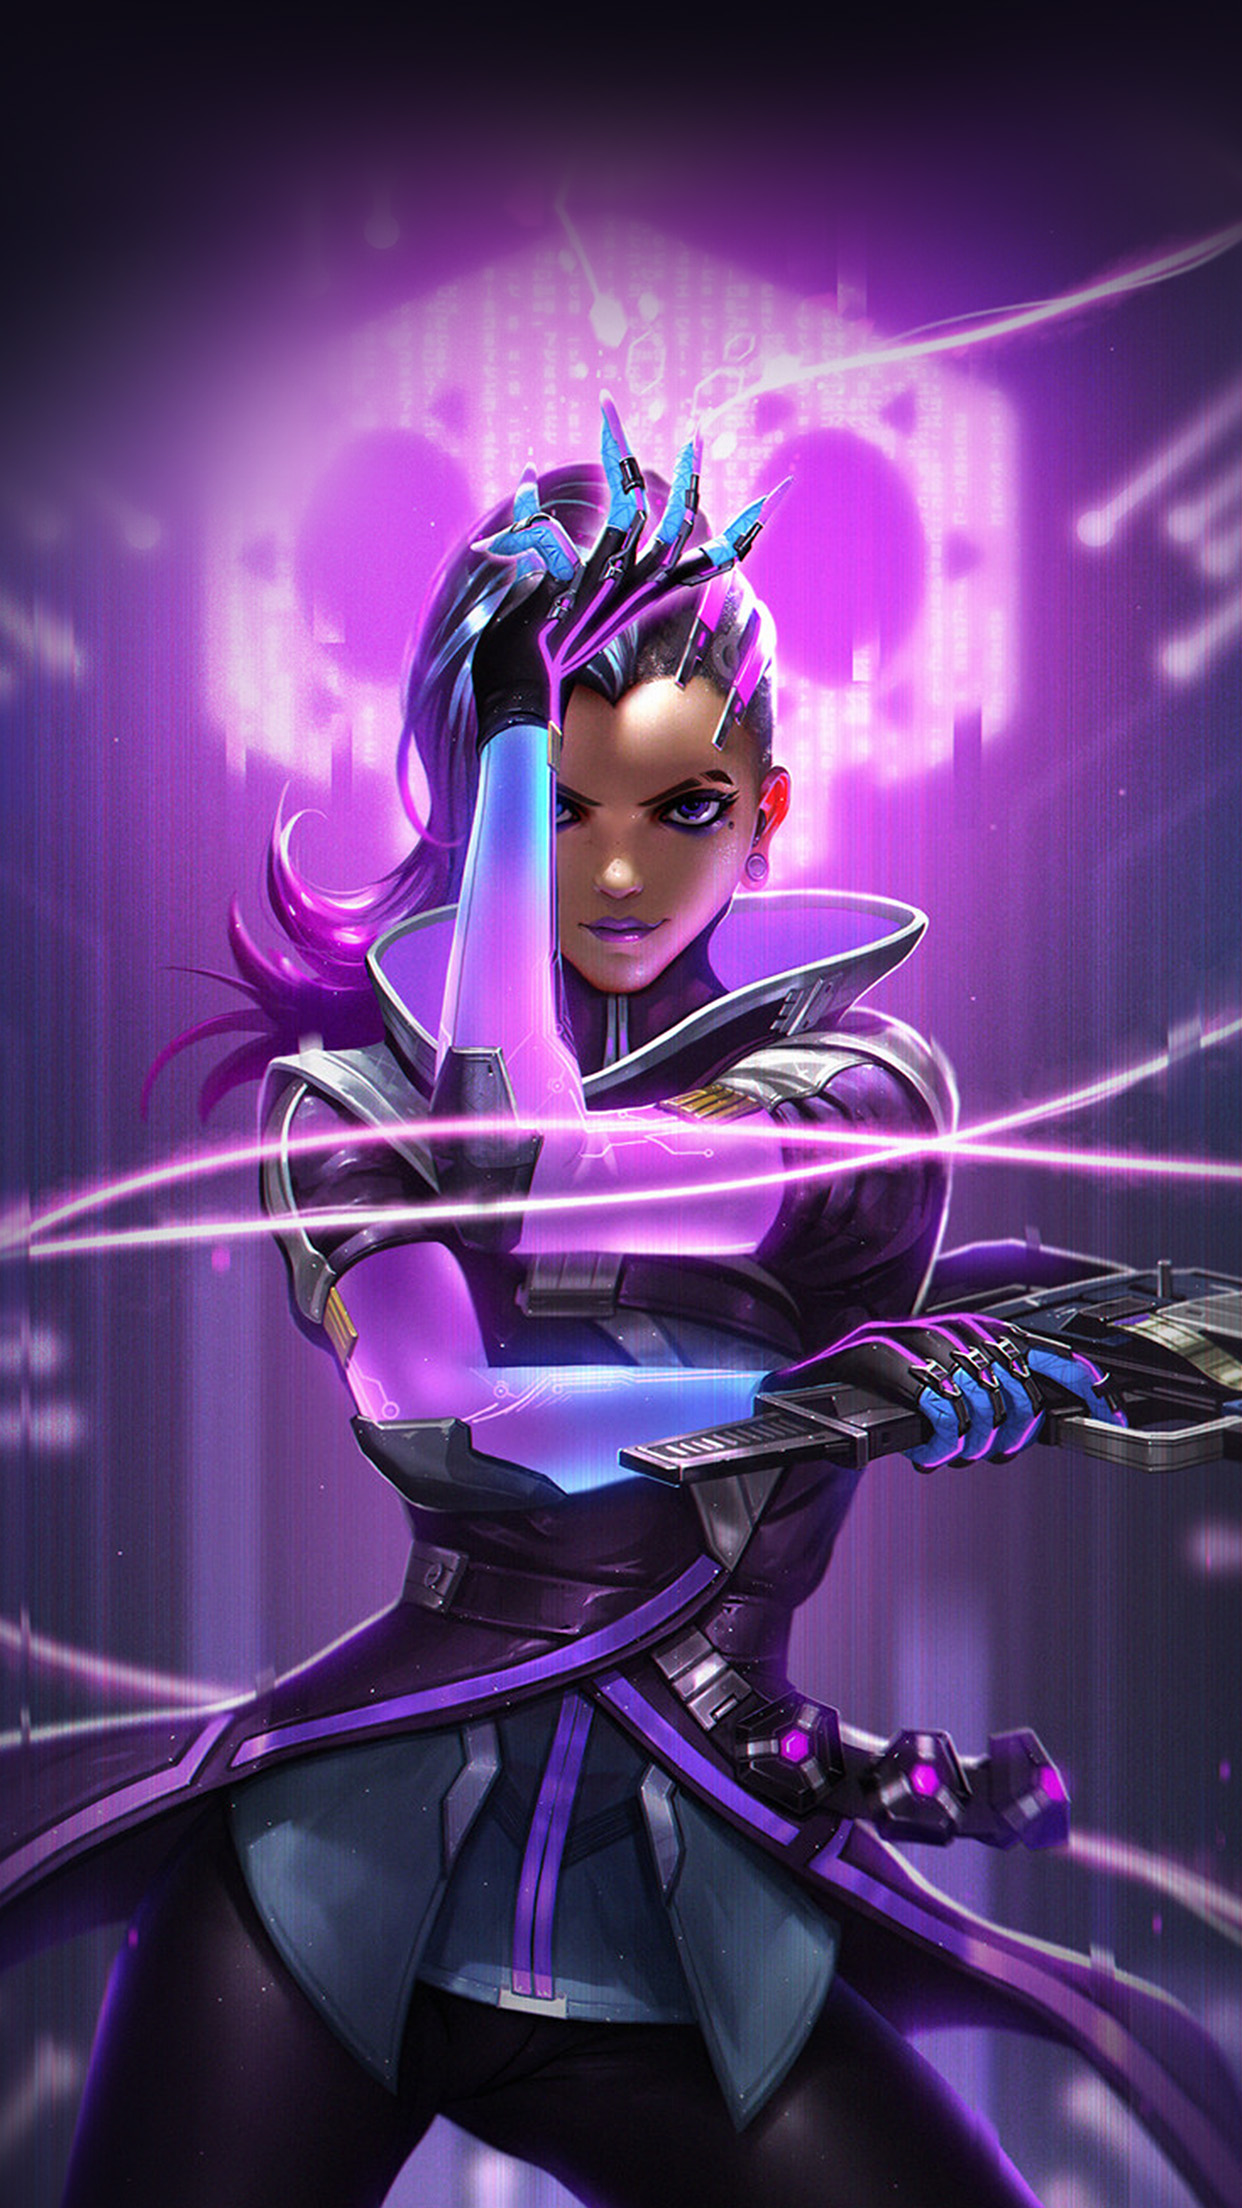 Liang Xing Overwatch Sombra Purple Game Hero Illustration Art Android wallpaper